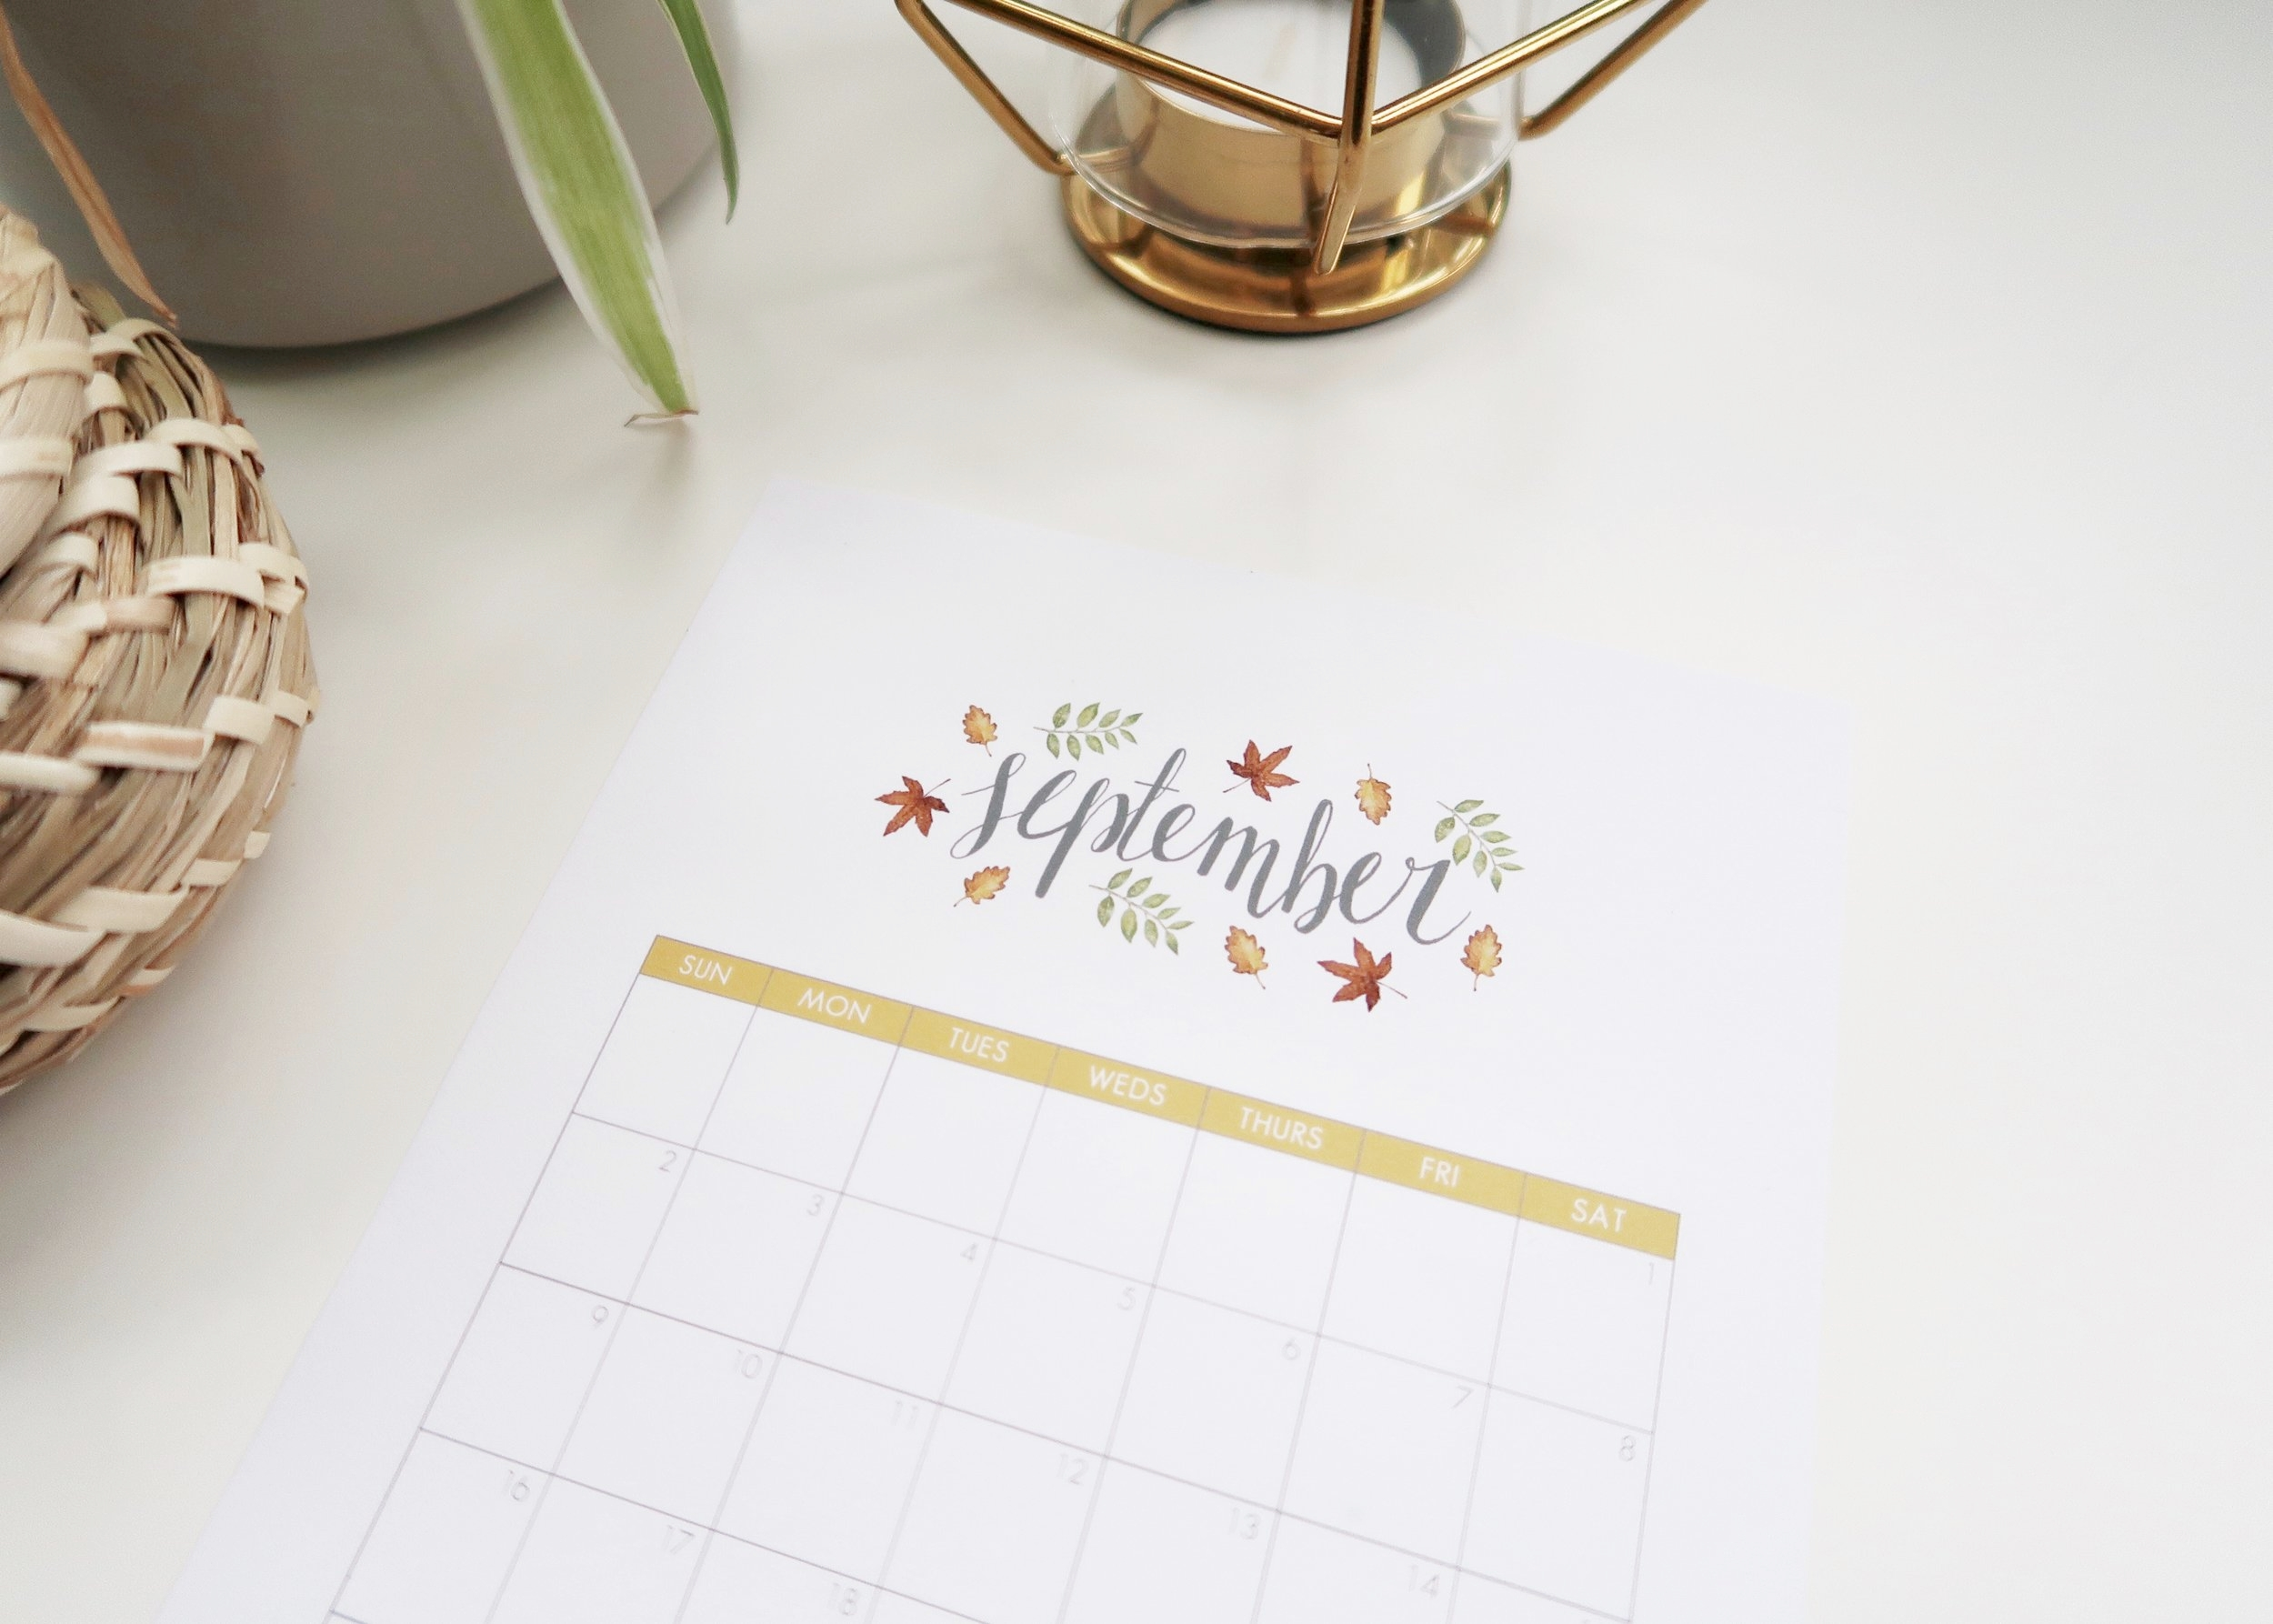 Printable September 2018 Calendar - Isoscella